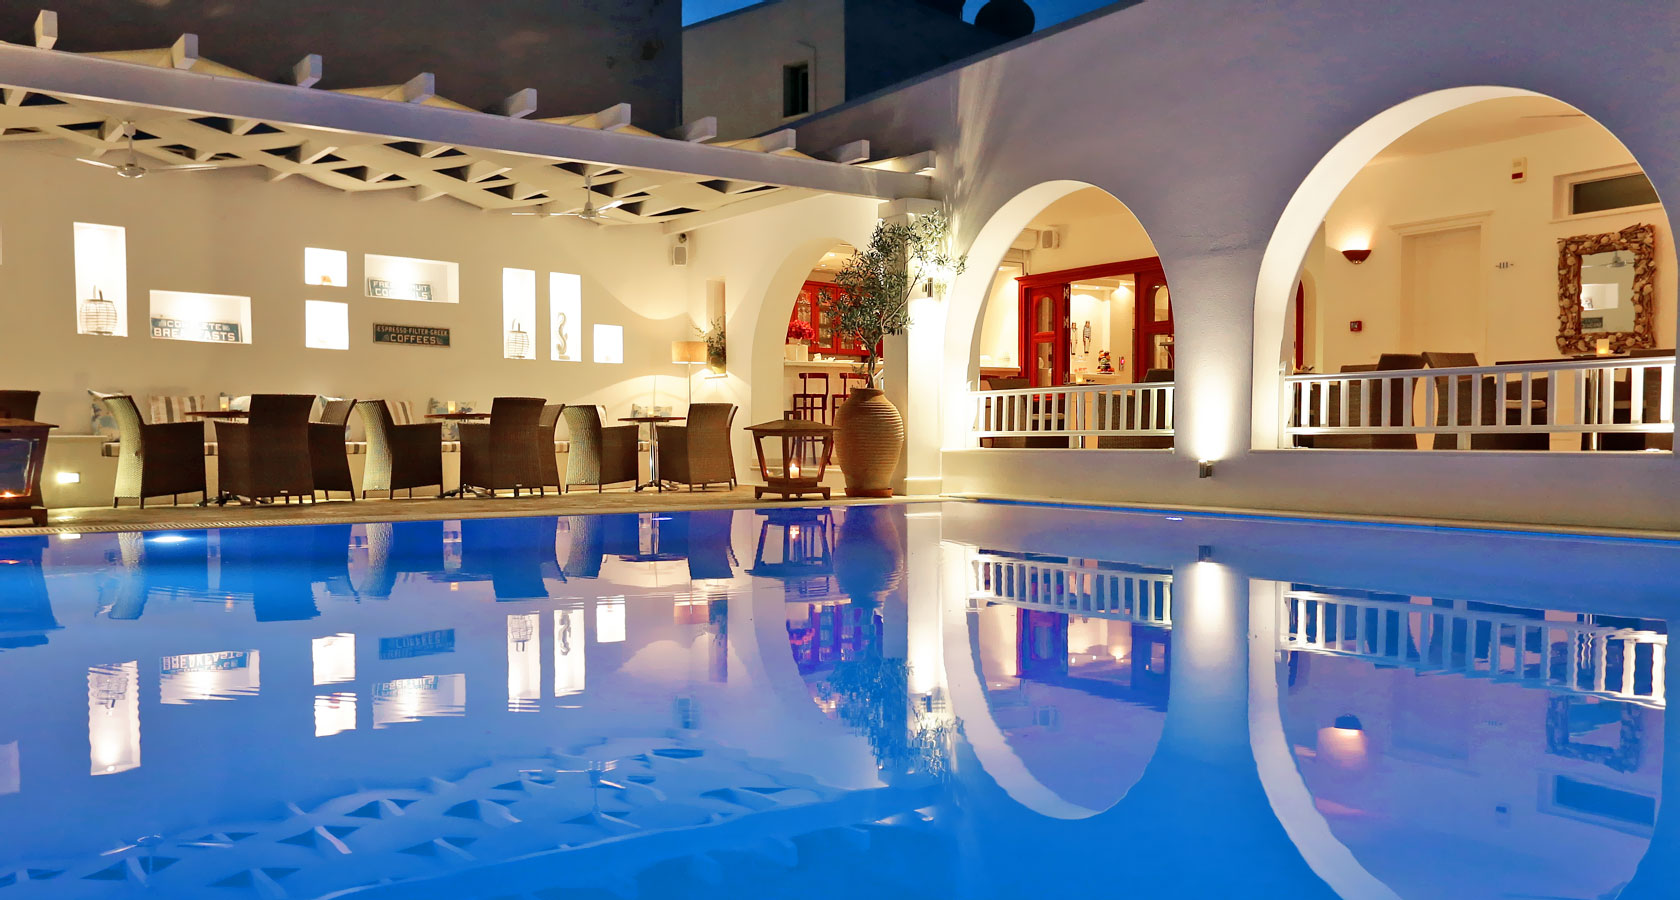 Stelia Mare Hotel in Paros – The pool